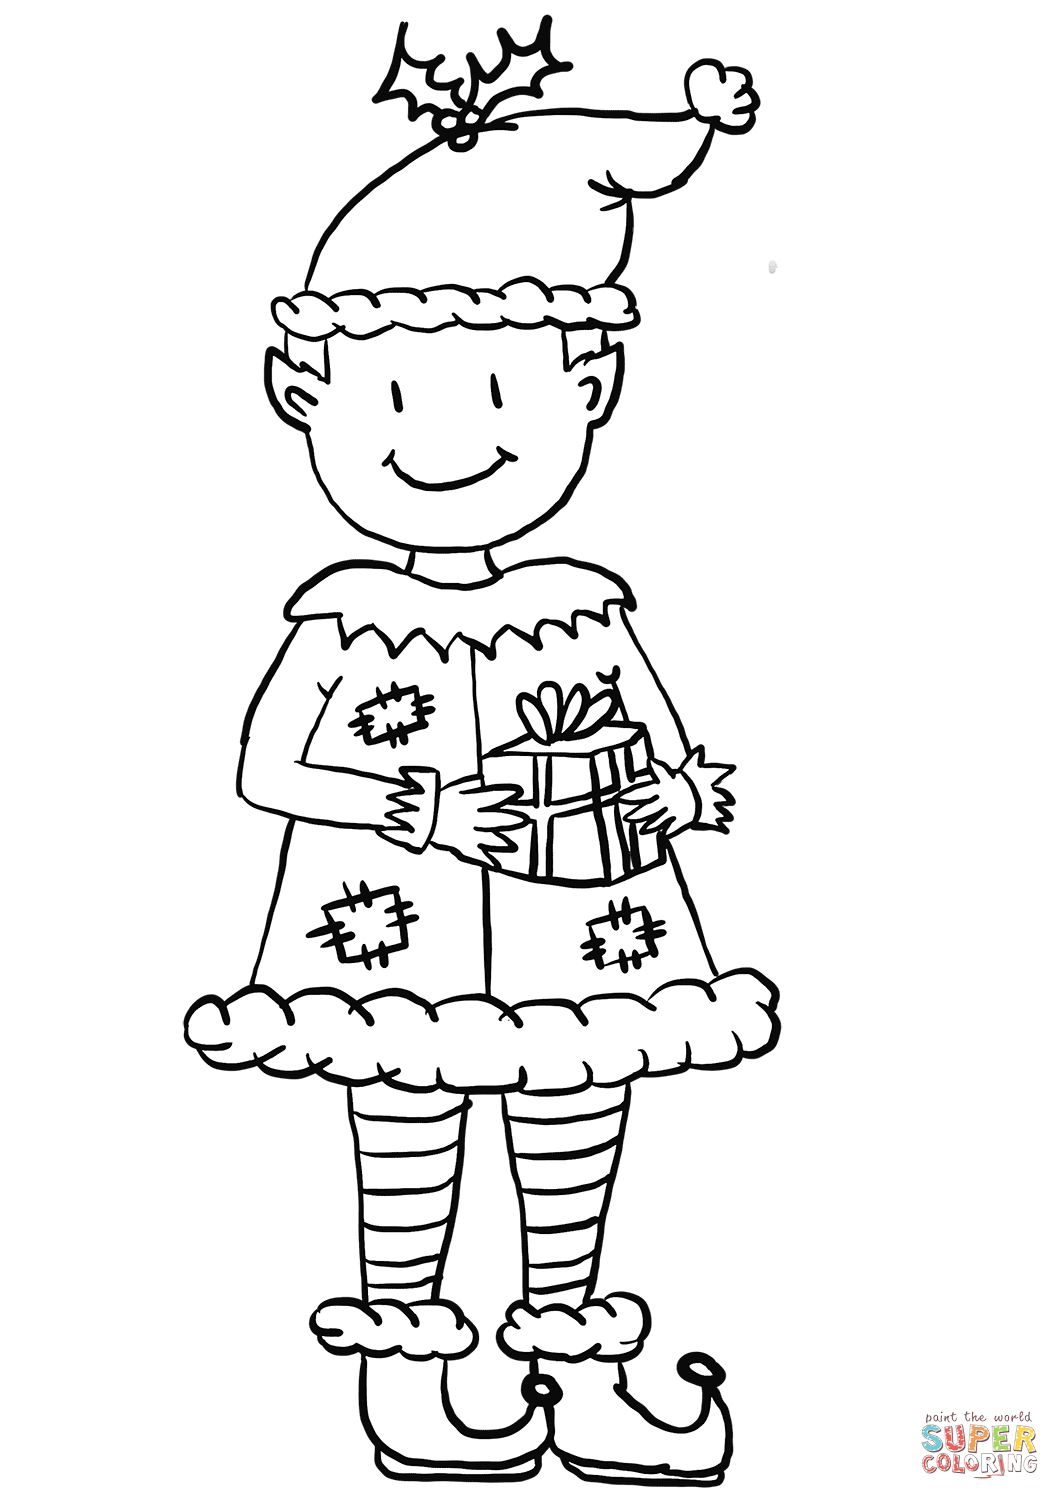 Christmas Elf Coloring Pages Christmas Elf Coloring Page Free Printable Coloring Pages